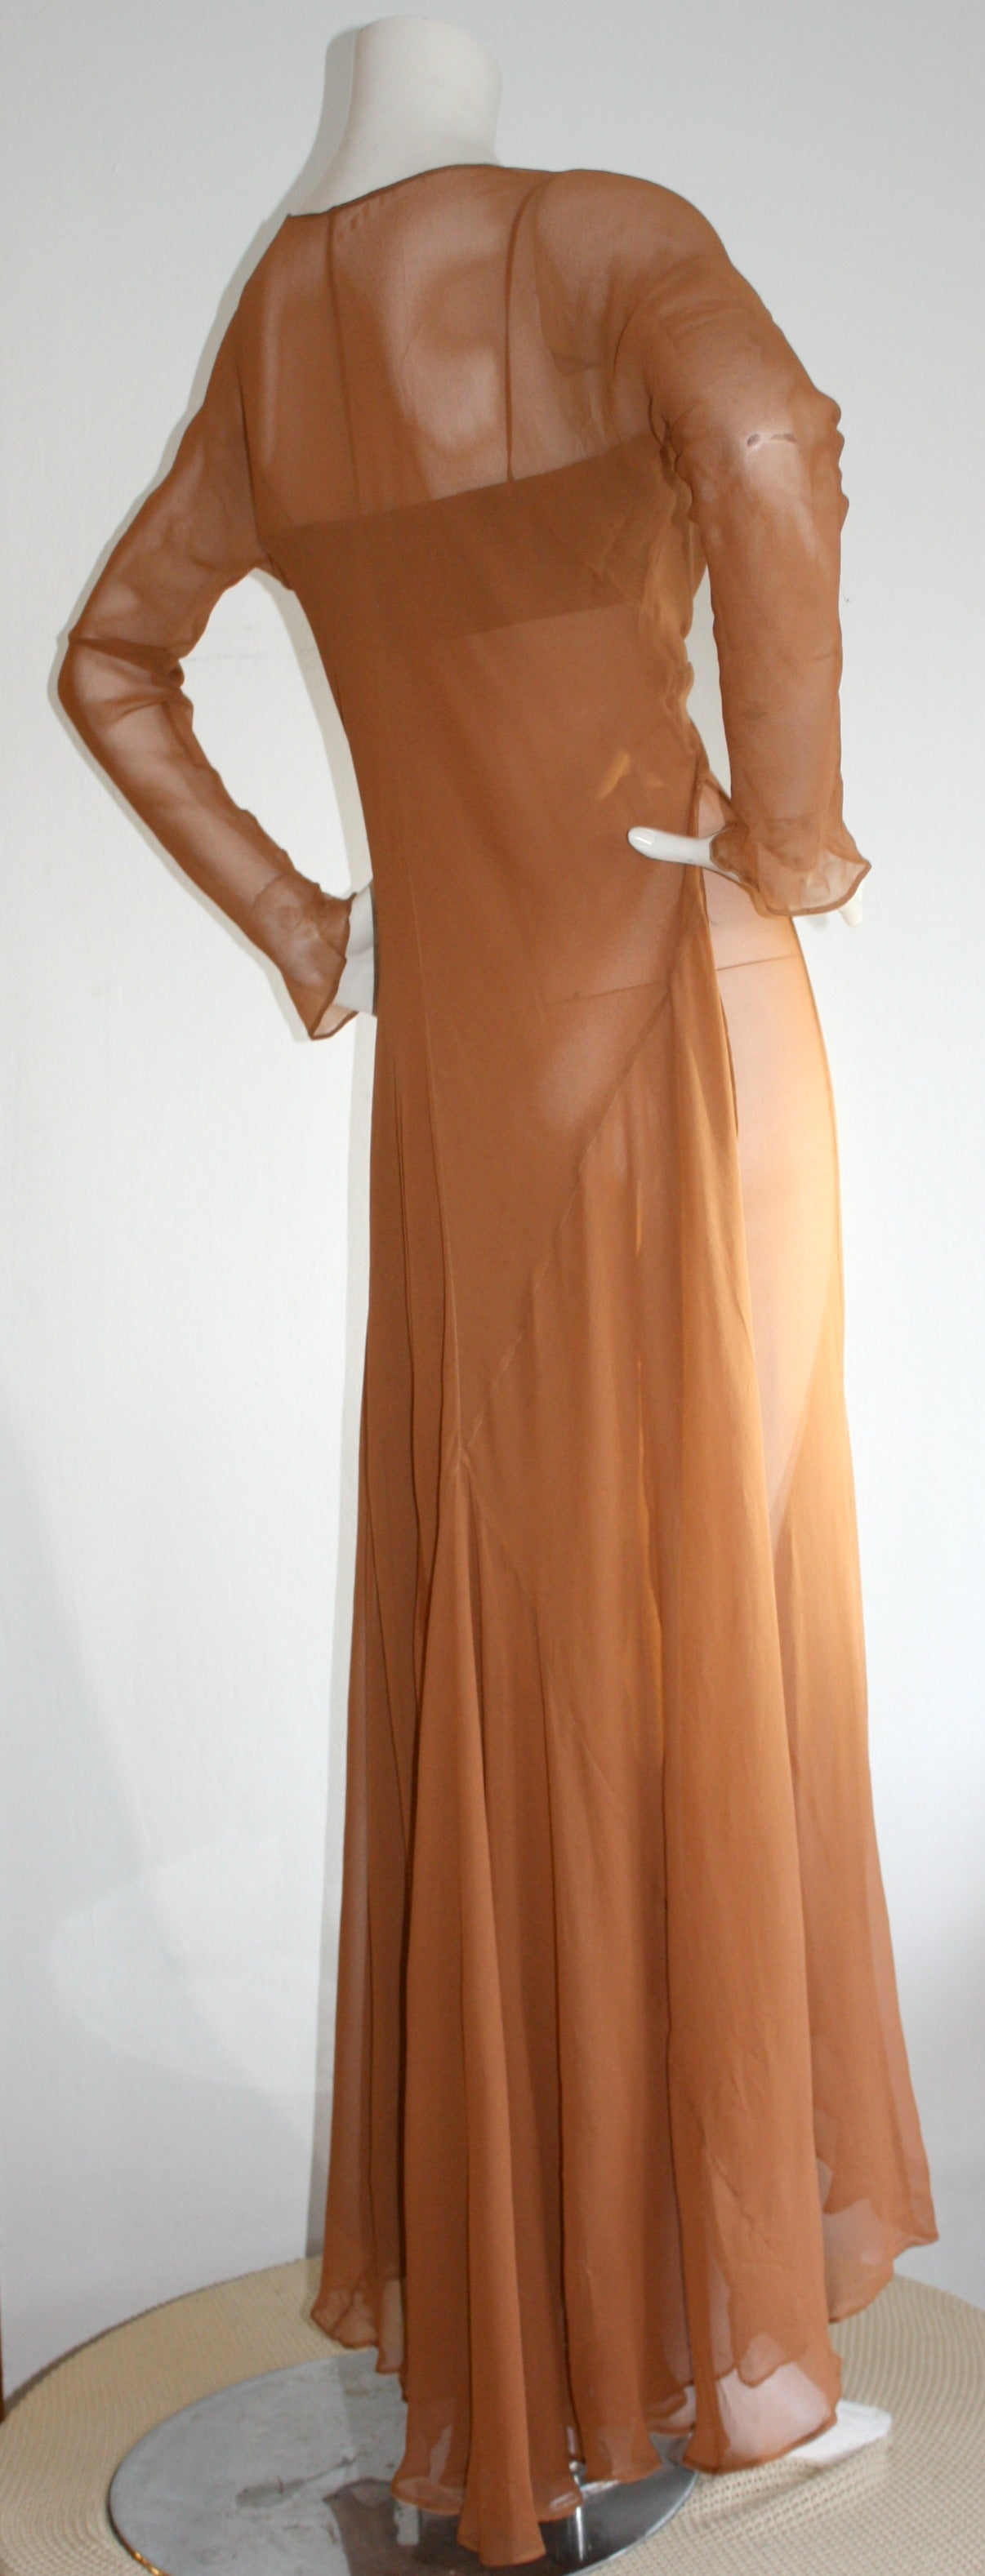 Exquisite Vintage Alberta Ferretti Grecian Goddess Chiffon Gown And Jacket For Sale 3